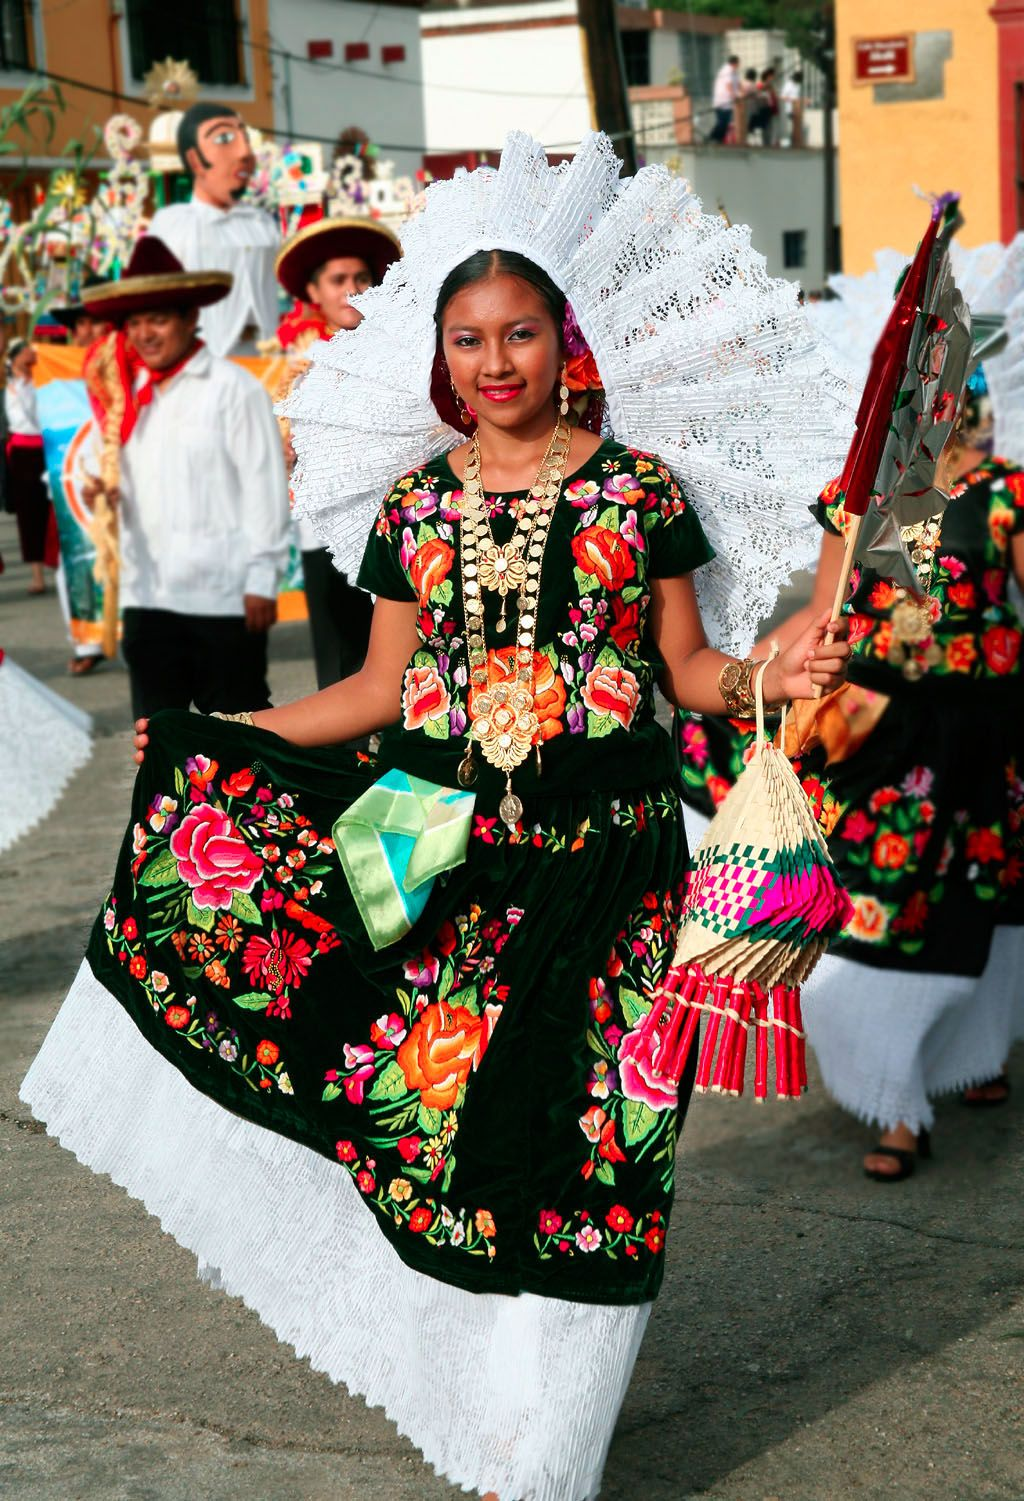 young woman wearing the traditional festive dress of